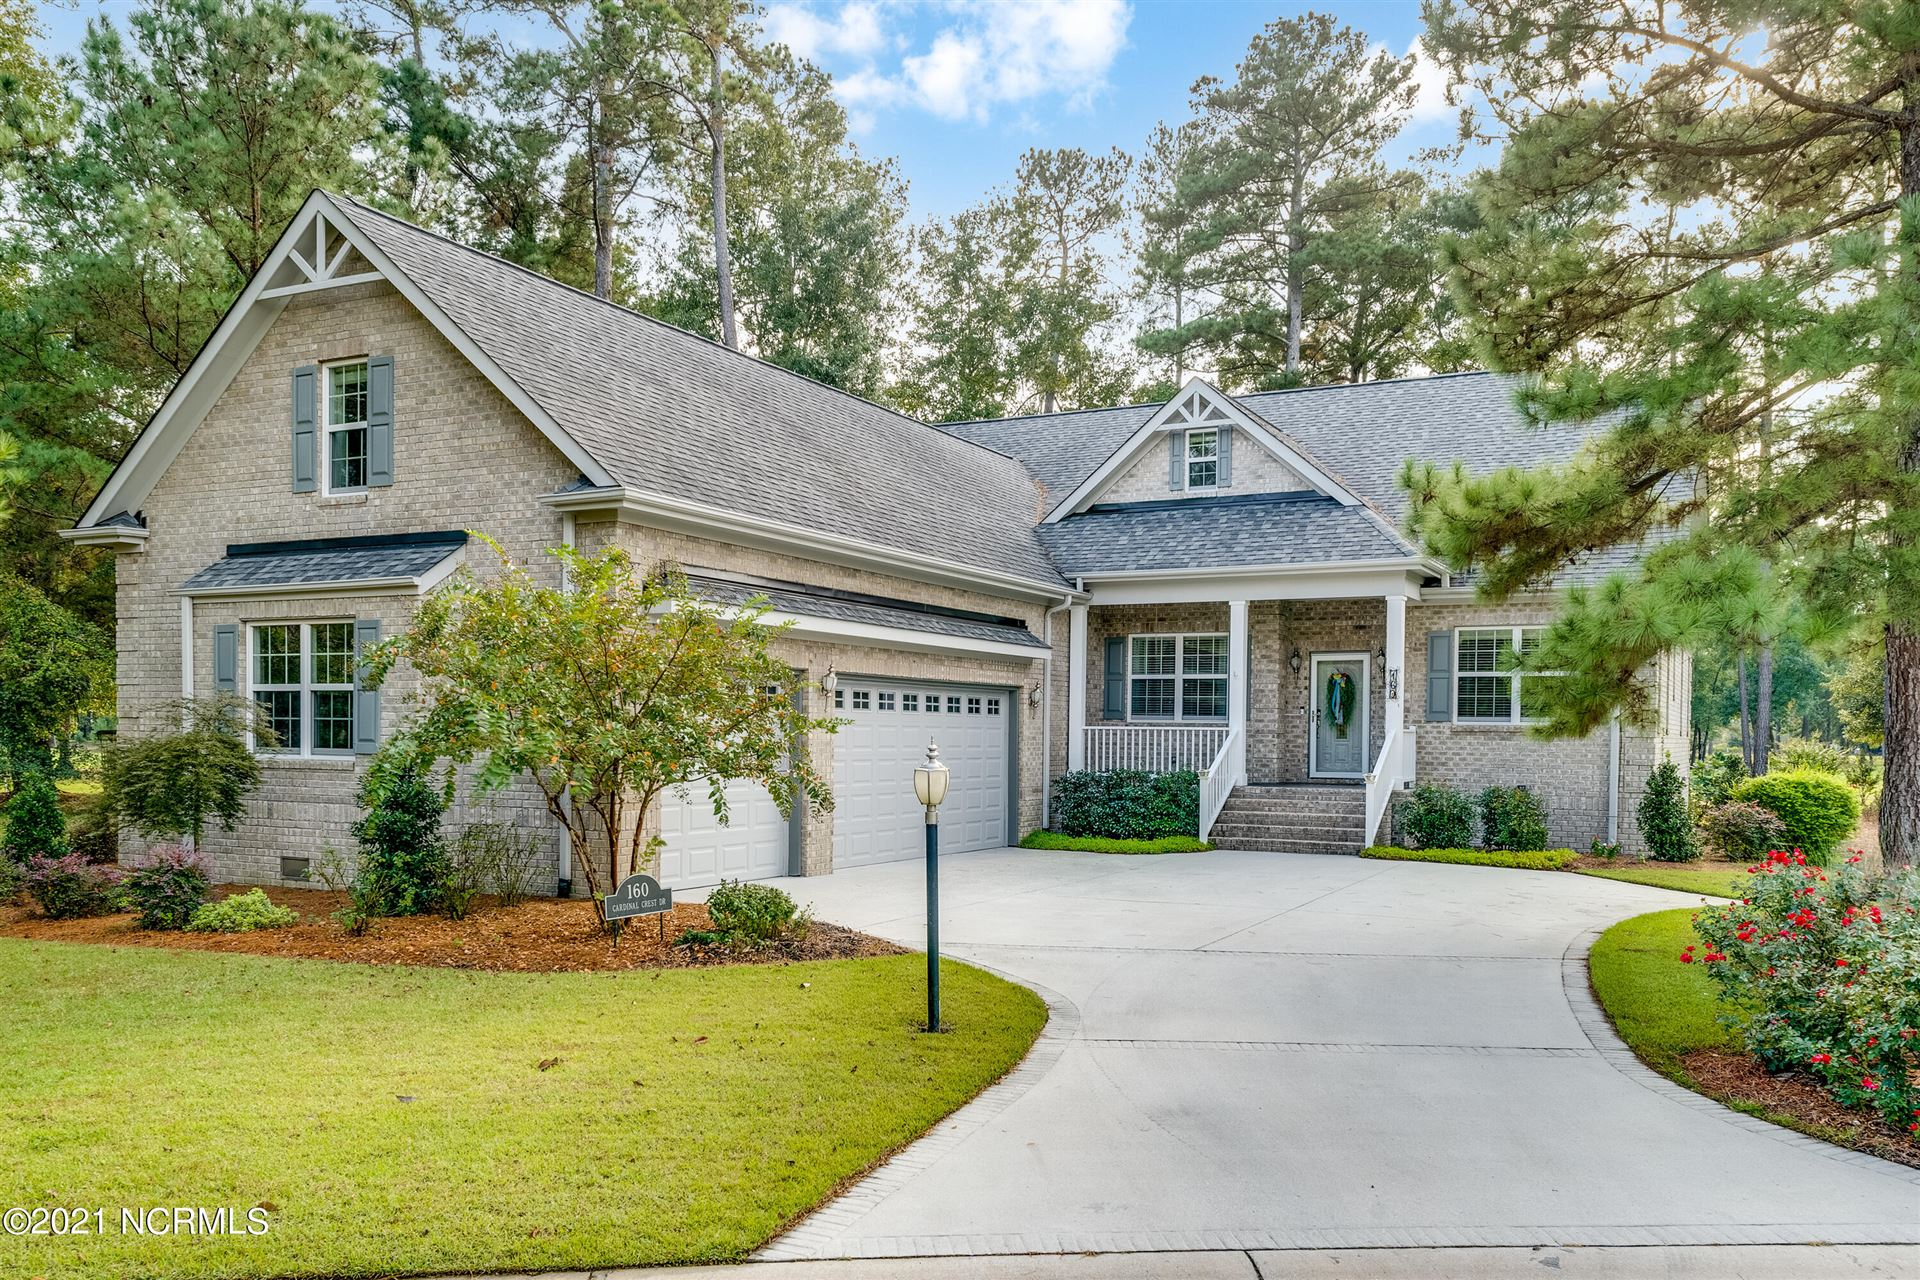 Photo of 160 Cardinal Crest Drive, Wallace, NC 28466 (MLS # 100293052)